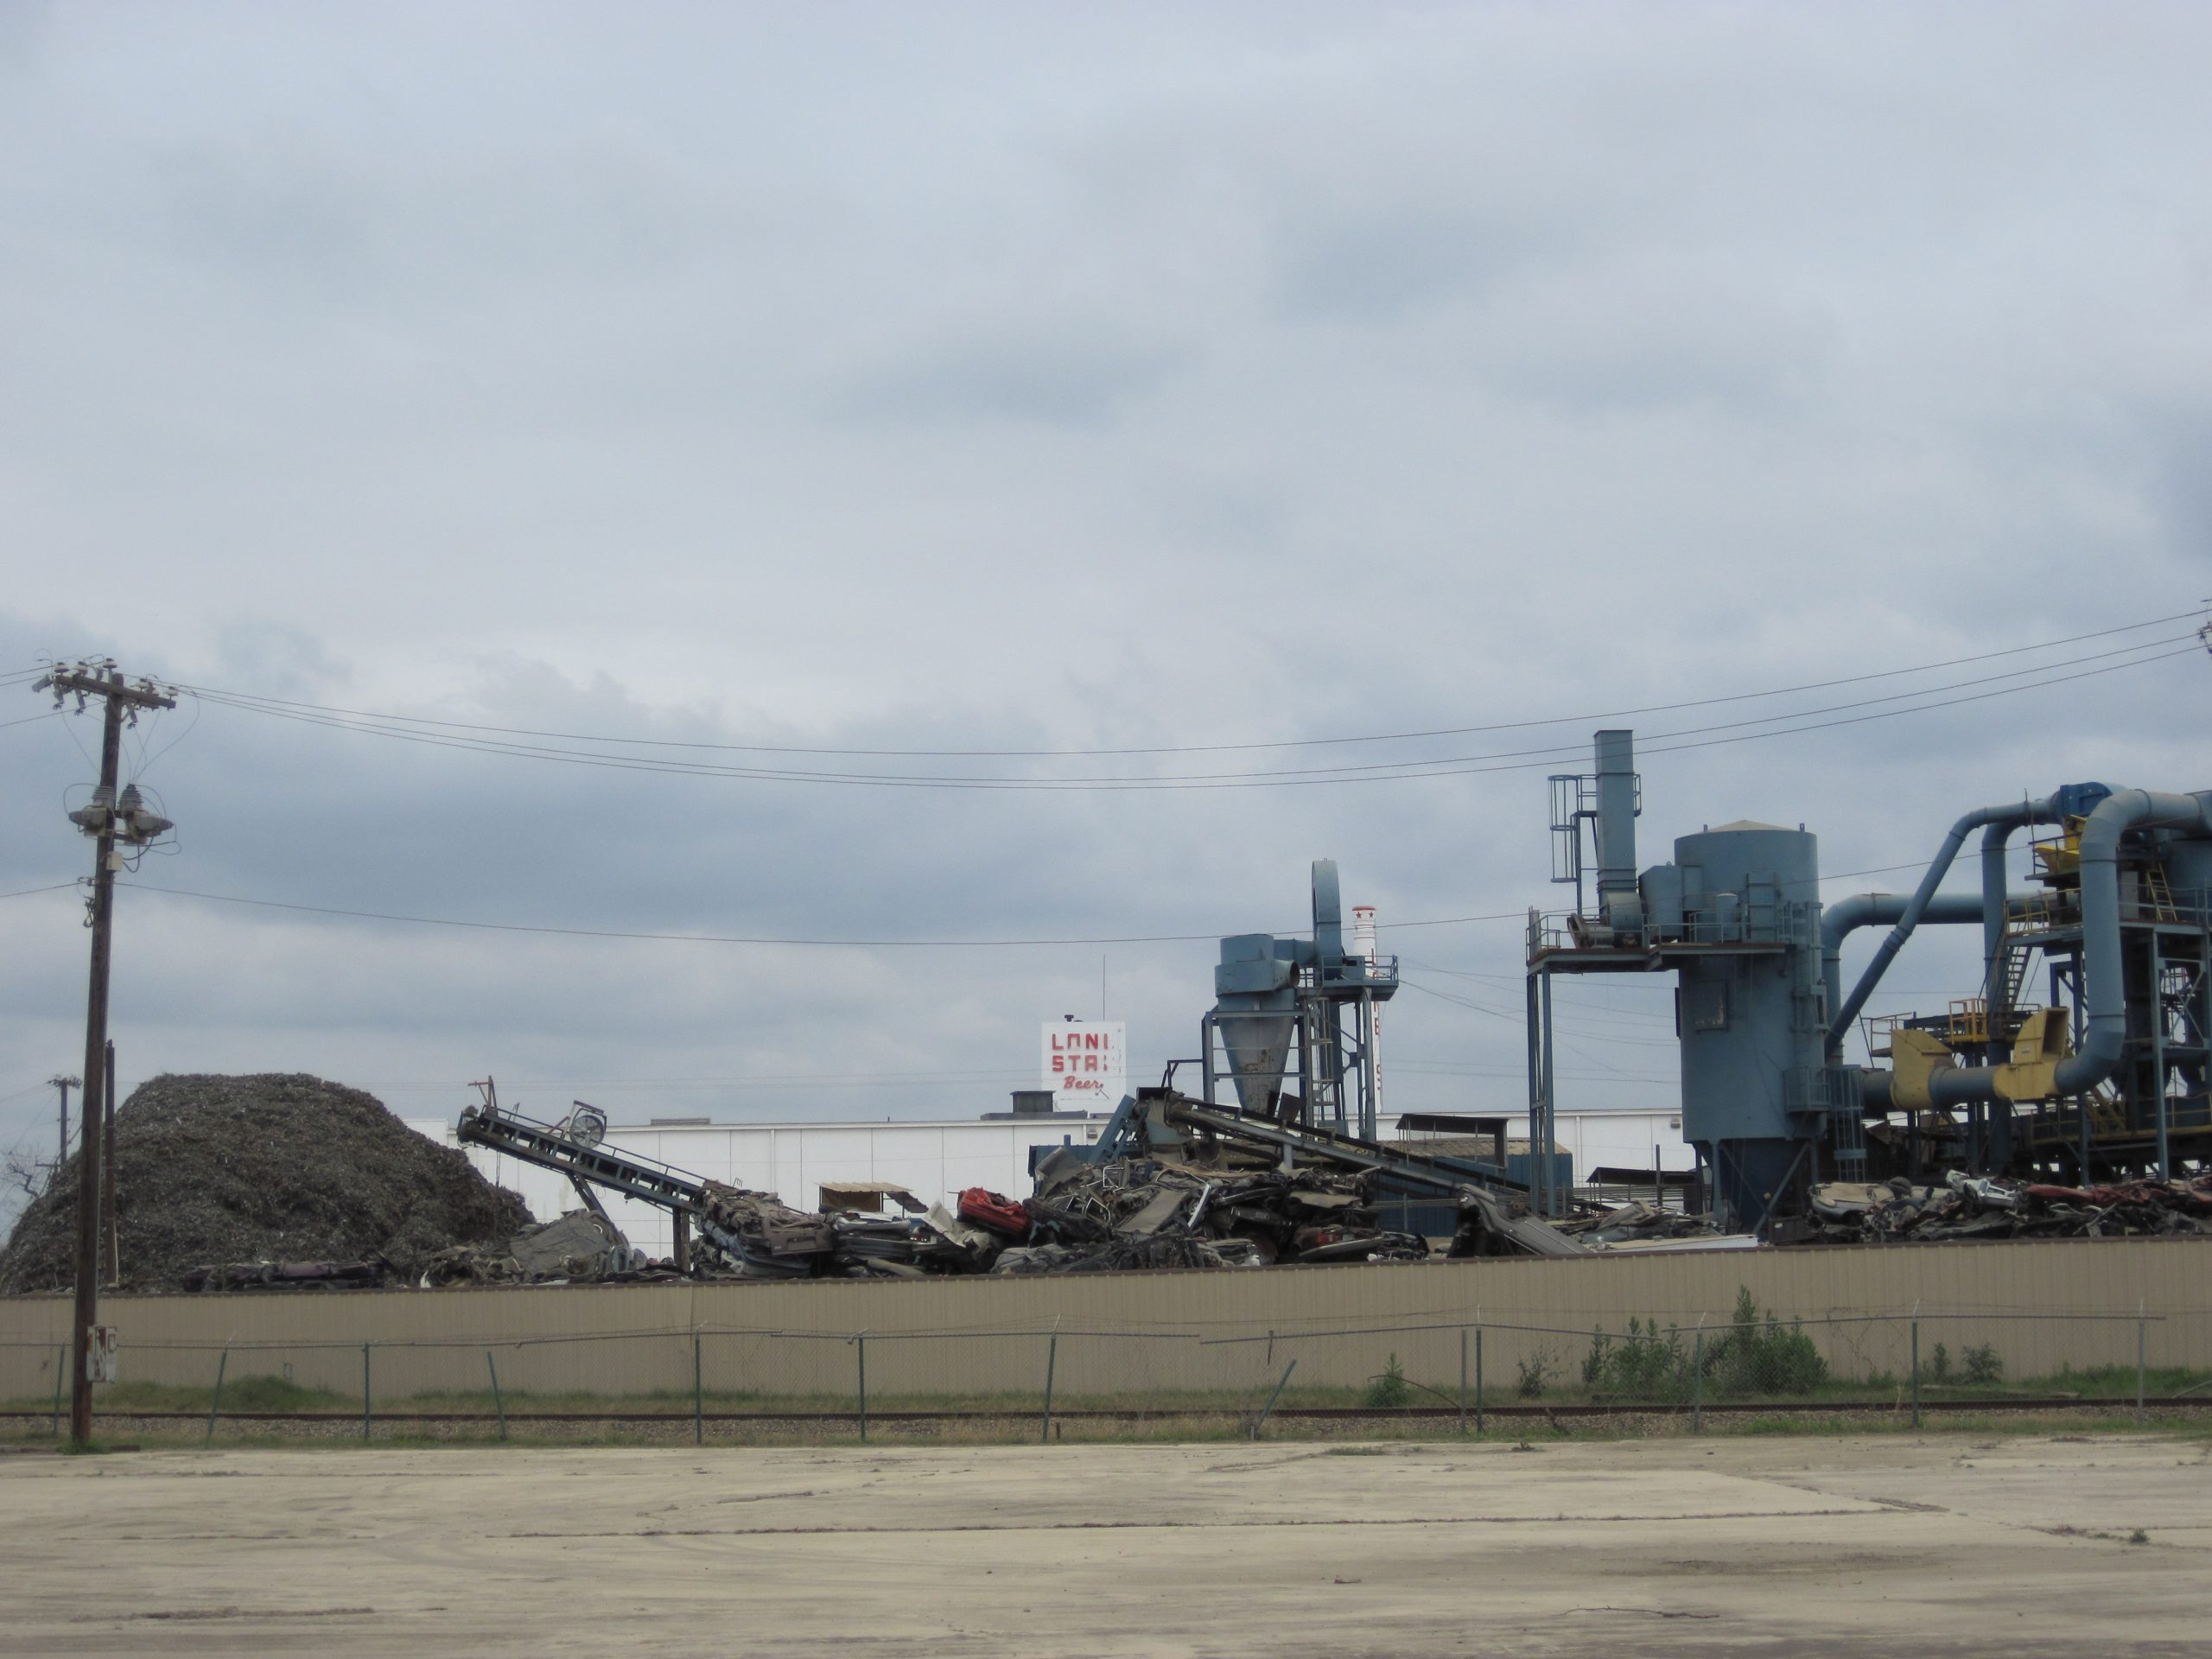 The Newell Plant, where cars go to die in the shadow of the abandoned Lone Star brewery. Photo by Randi Rushing.